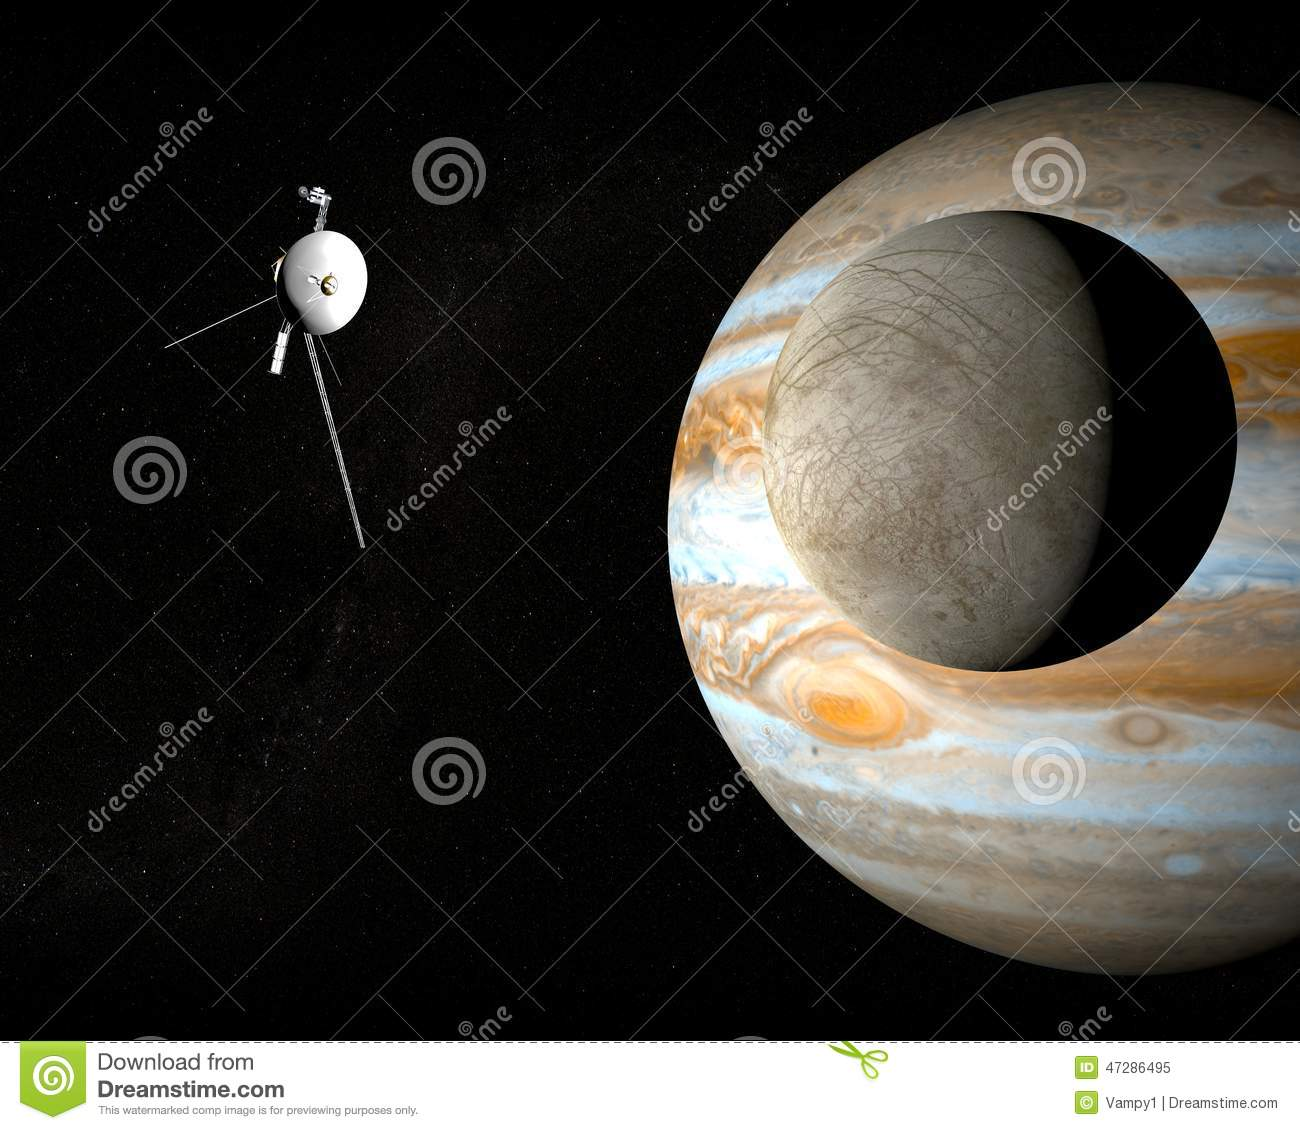 Space Probe Voyager And Jupiter's Moon Europa Stock ...